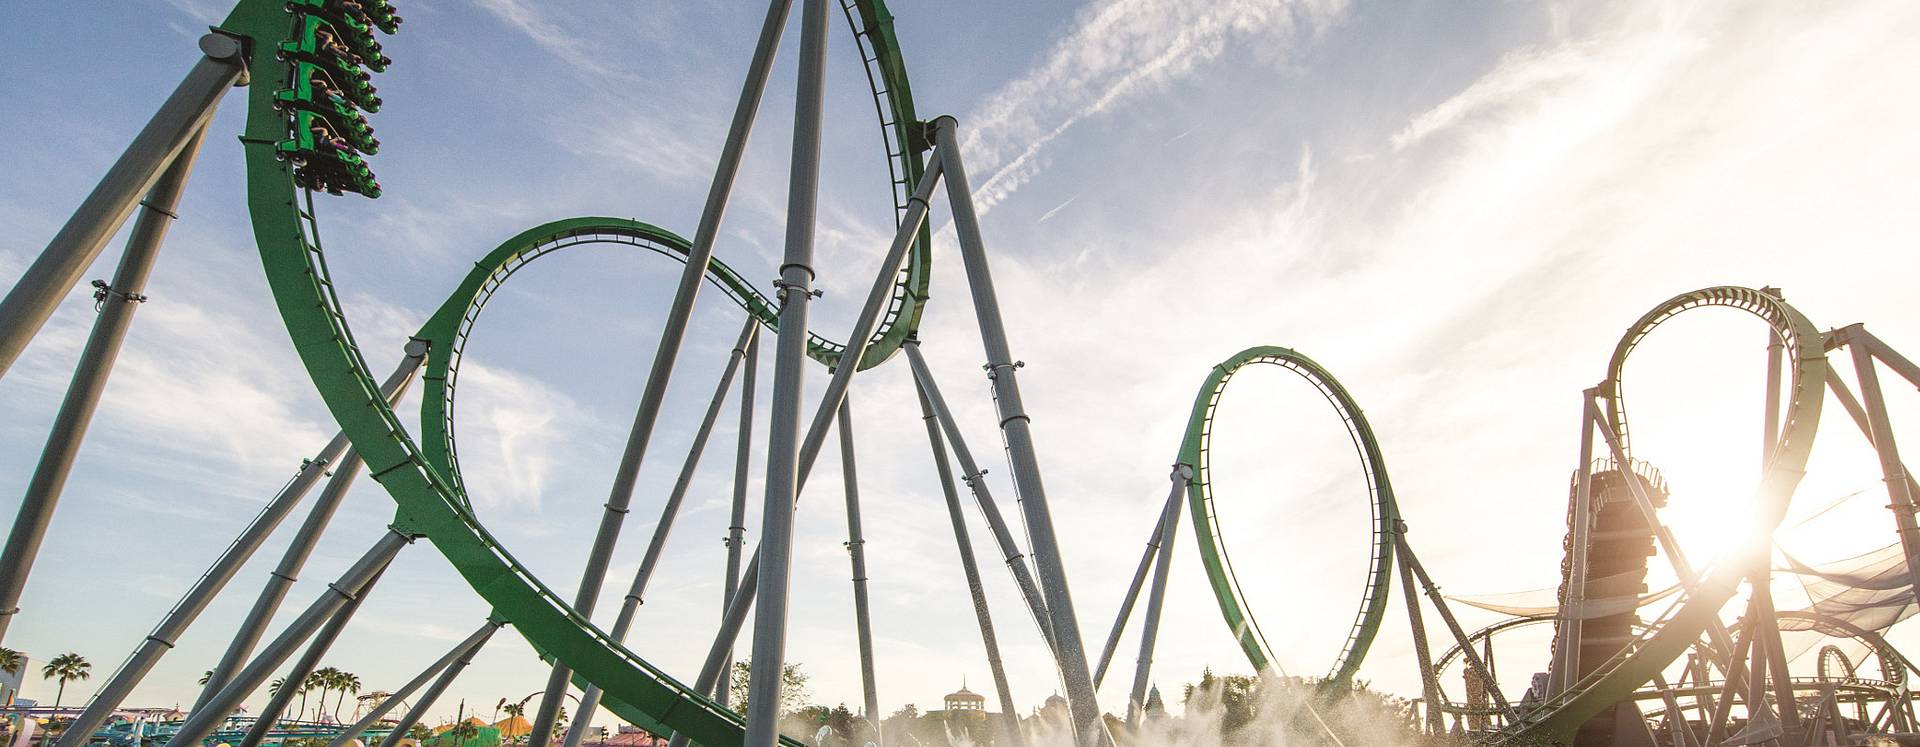 The Incredible Hulk attraction at Universal's Islands of Adventure